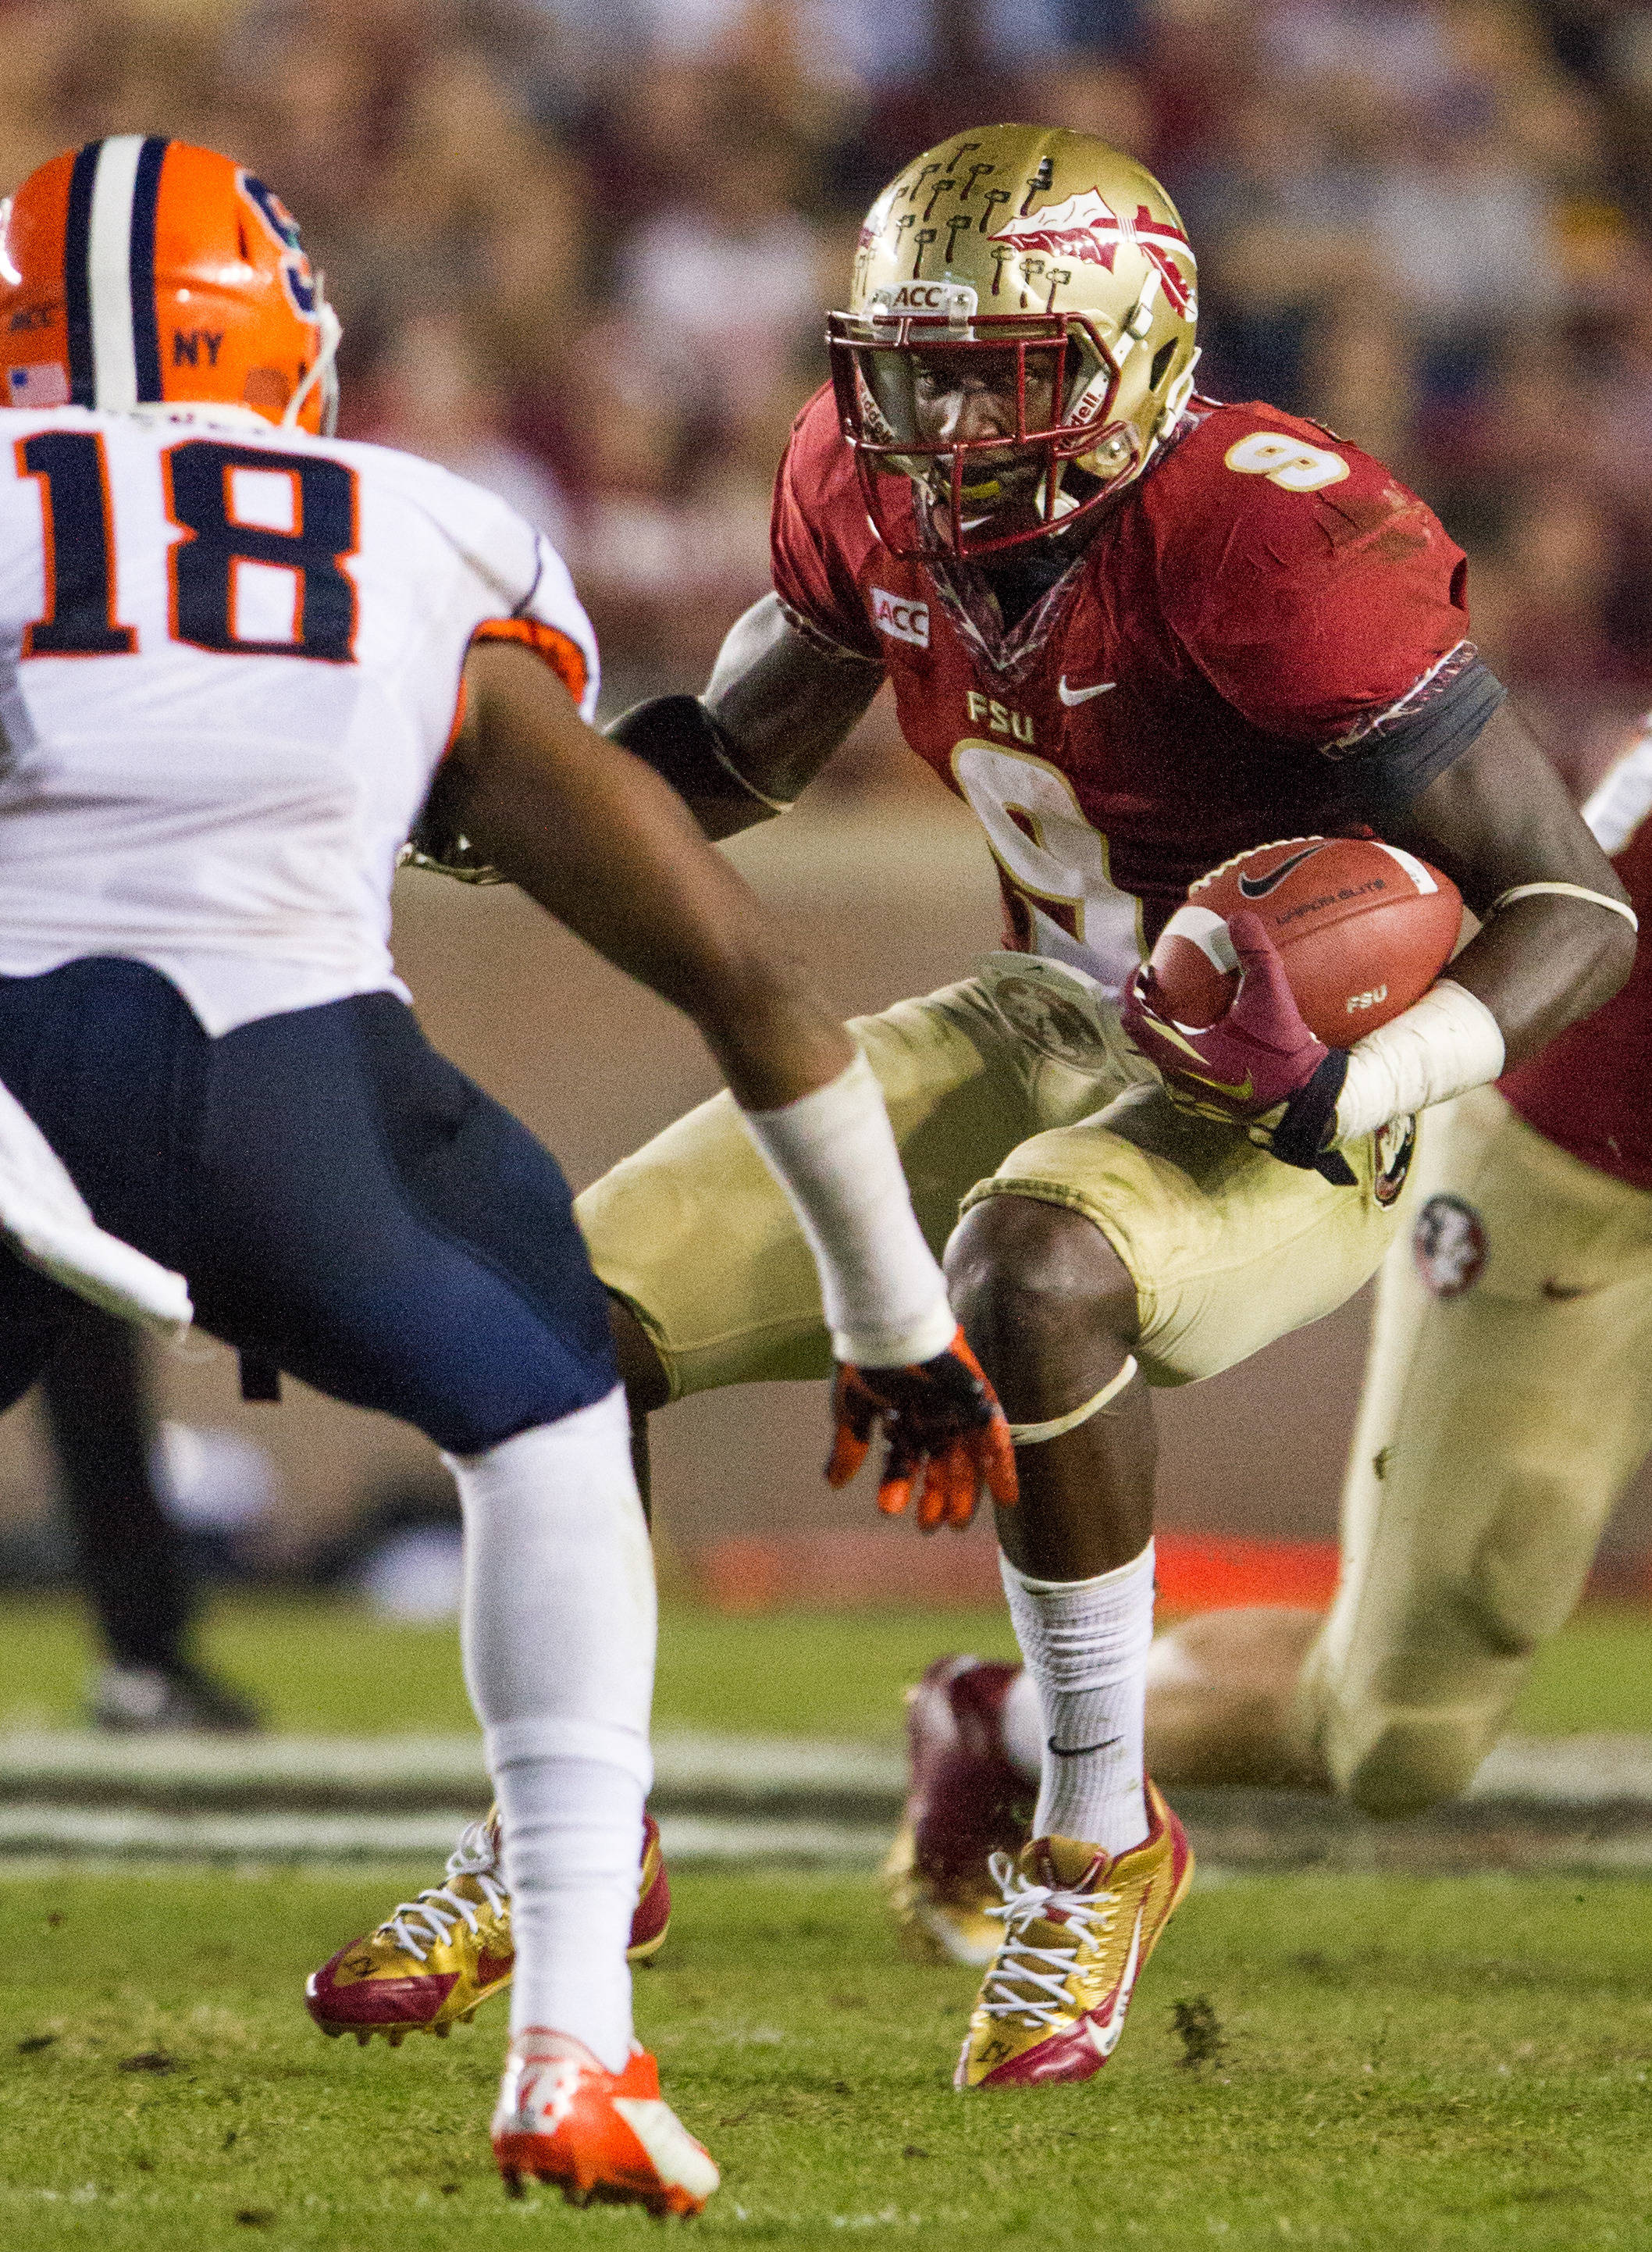 Karlos Williams (9) runs the ball during FSU Football's 59-3 win over Syracuse on Saturday, November 16, 2013 in Tallahassee, Fla. Photo by Mike Schwarz.